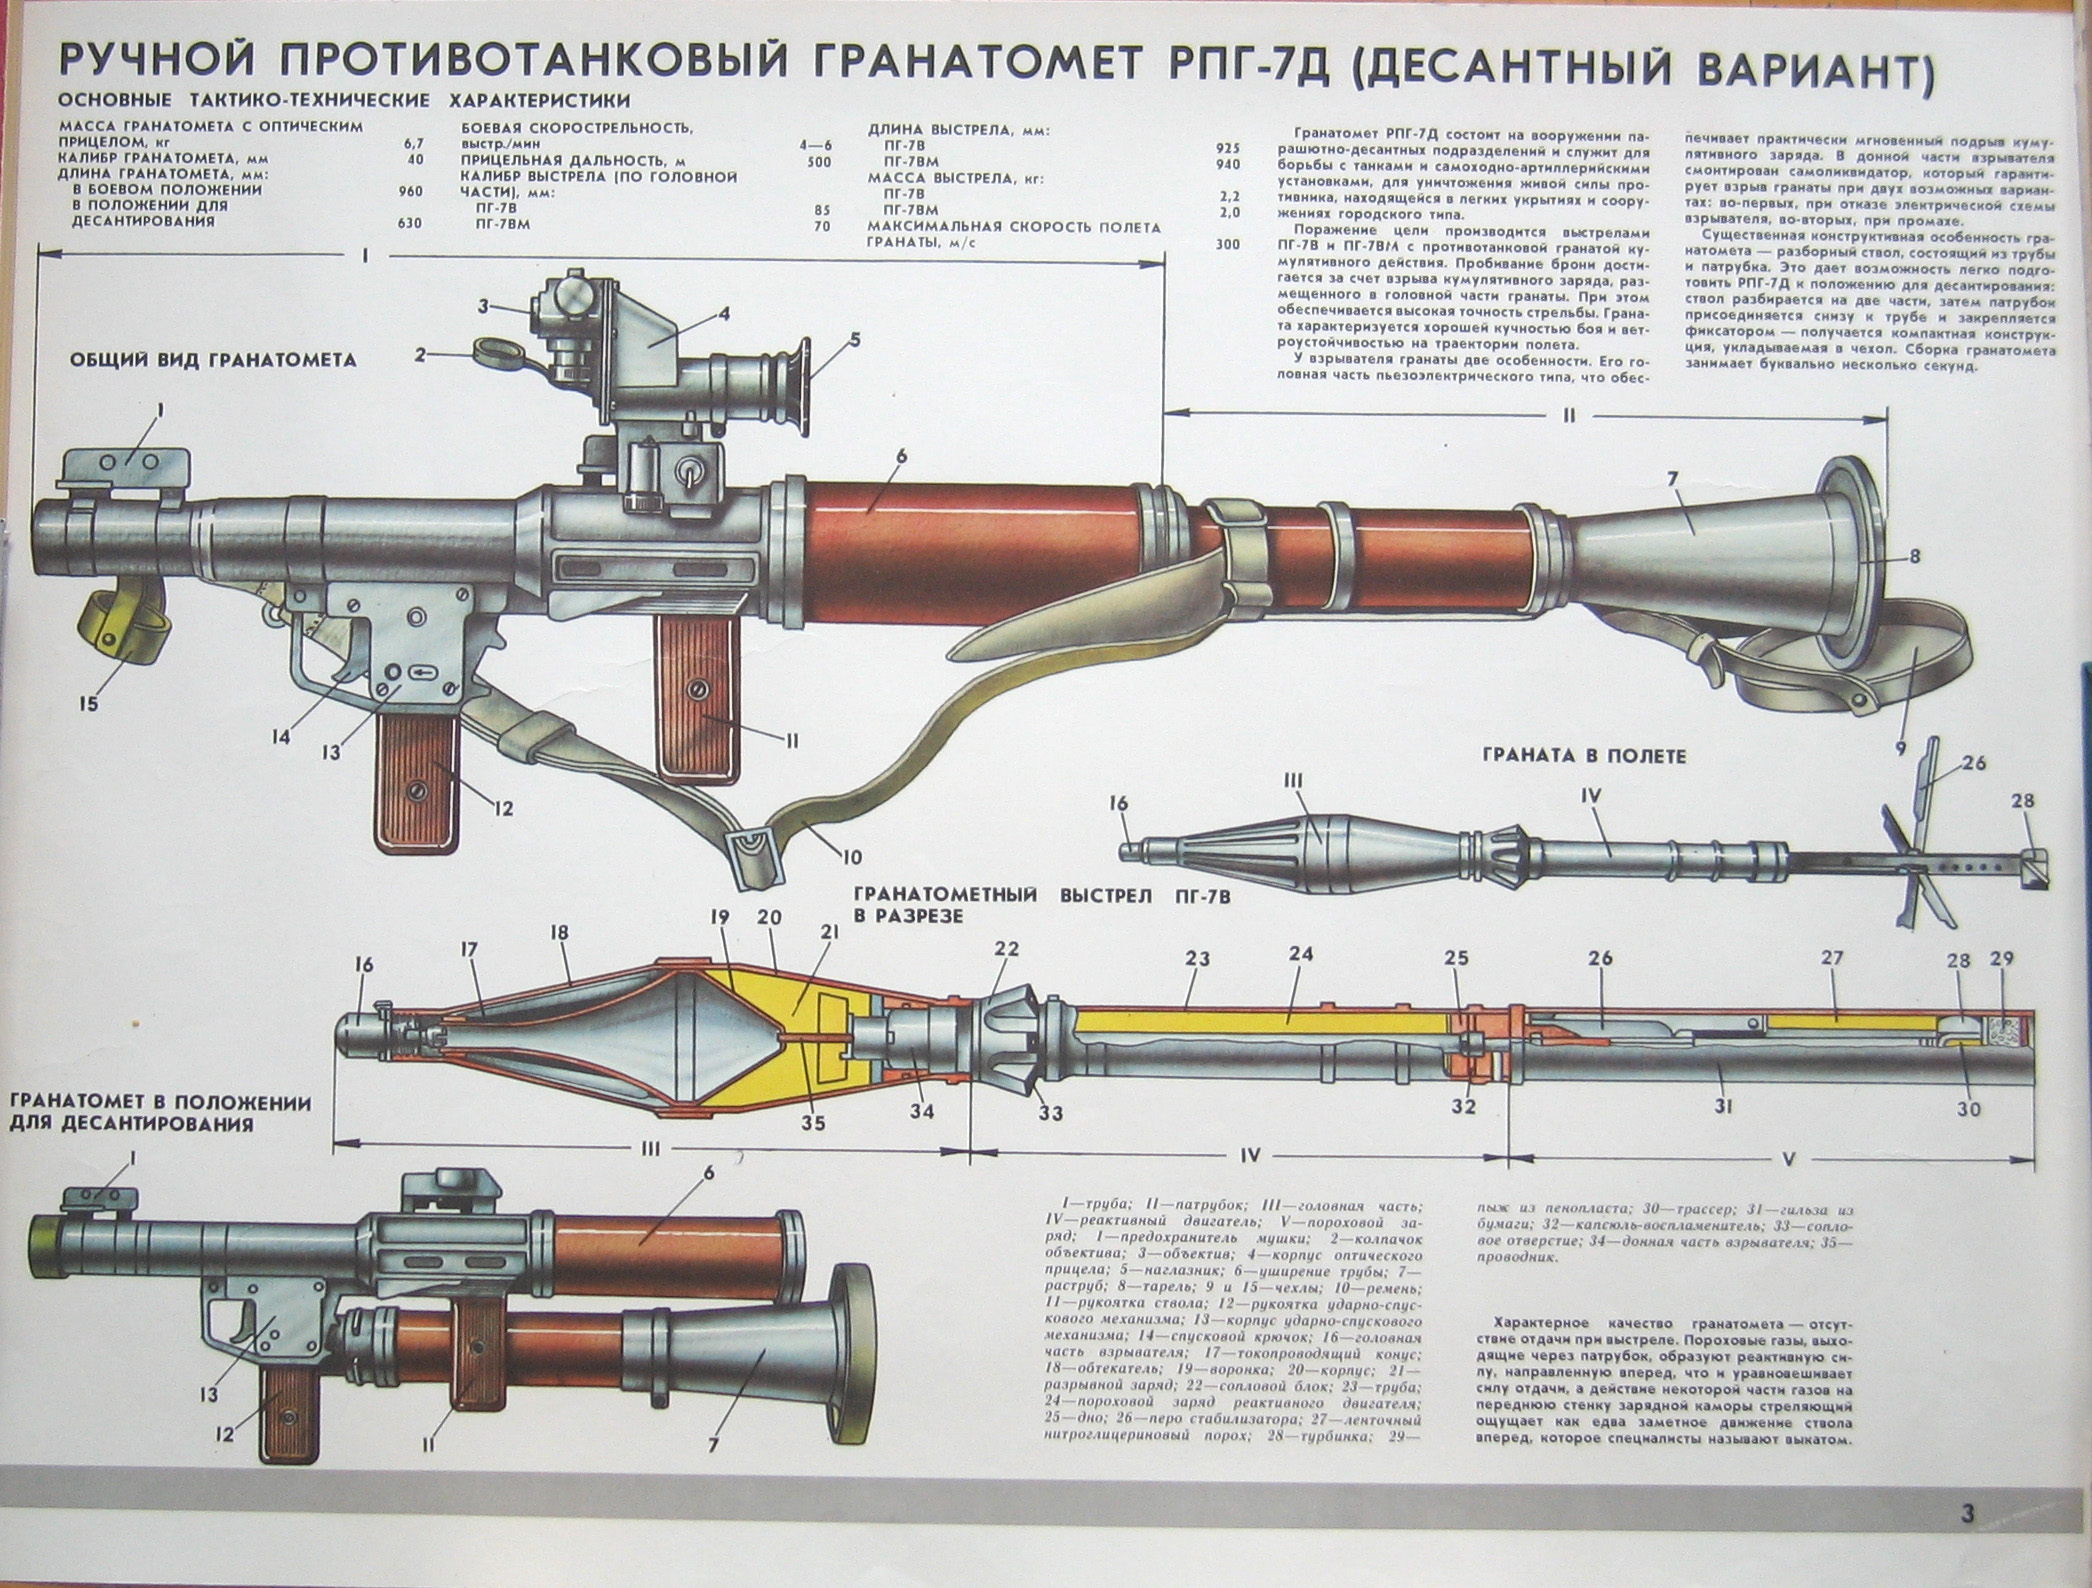 Hand-held anti-tank grenade RPG-7D (amphibious version)